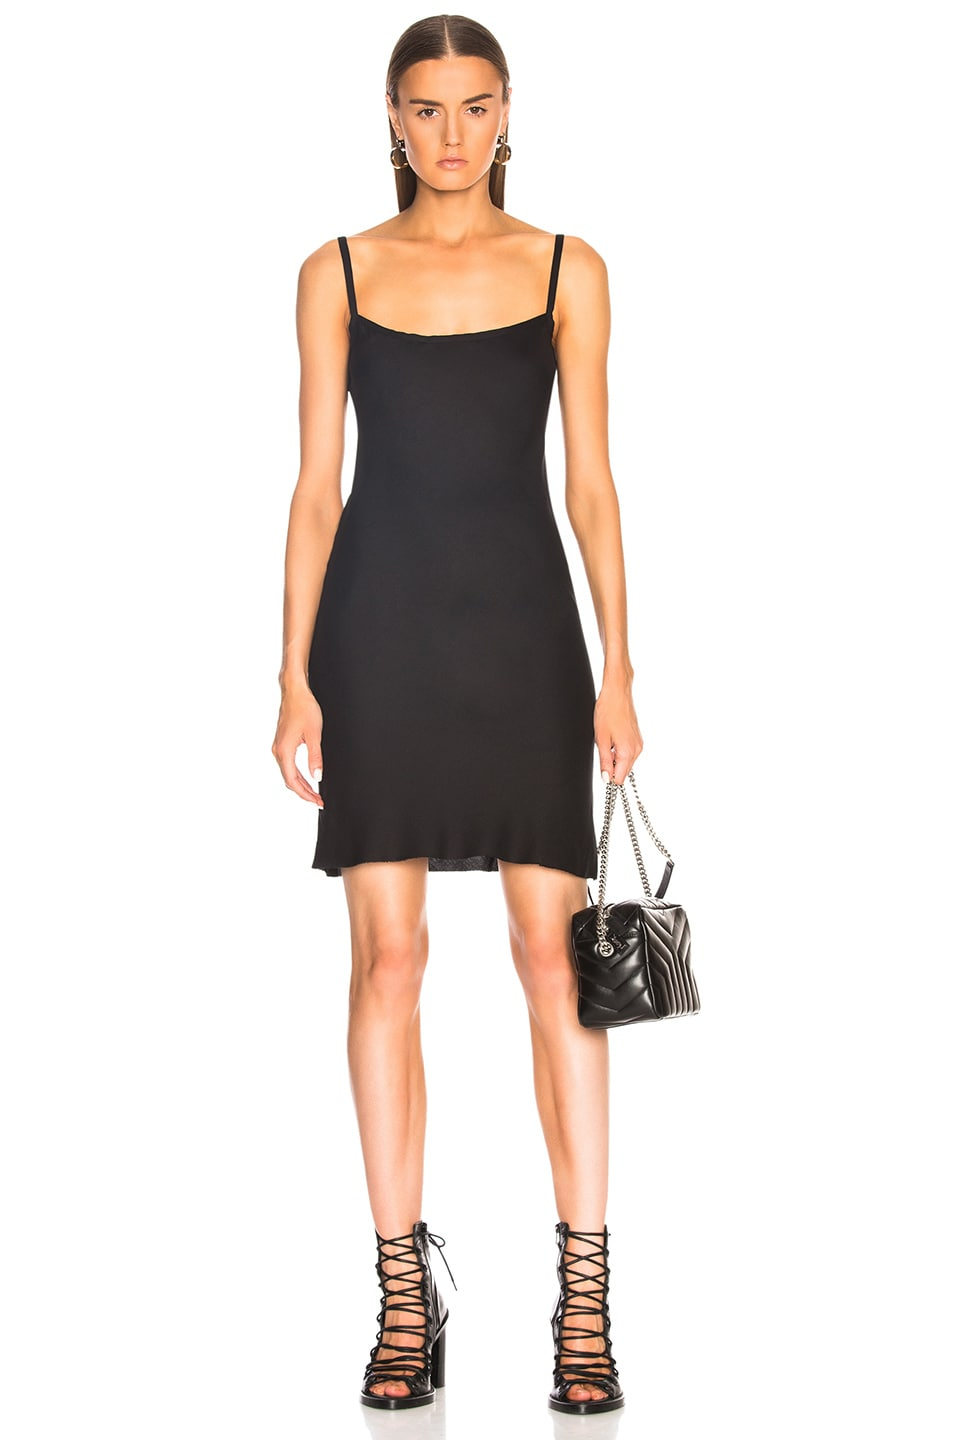 Ann Demeulemeester Slip Dress in Black